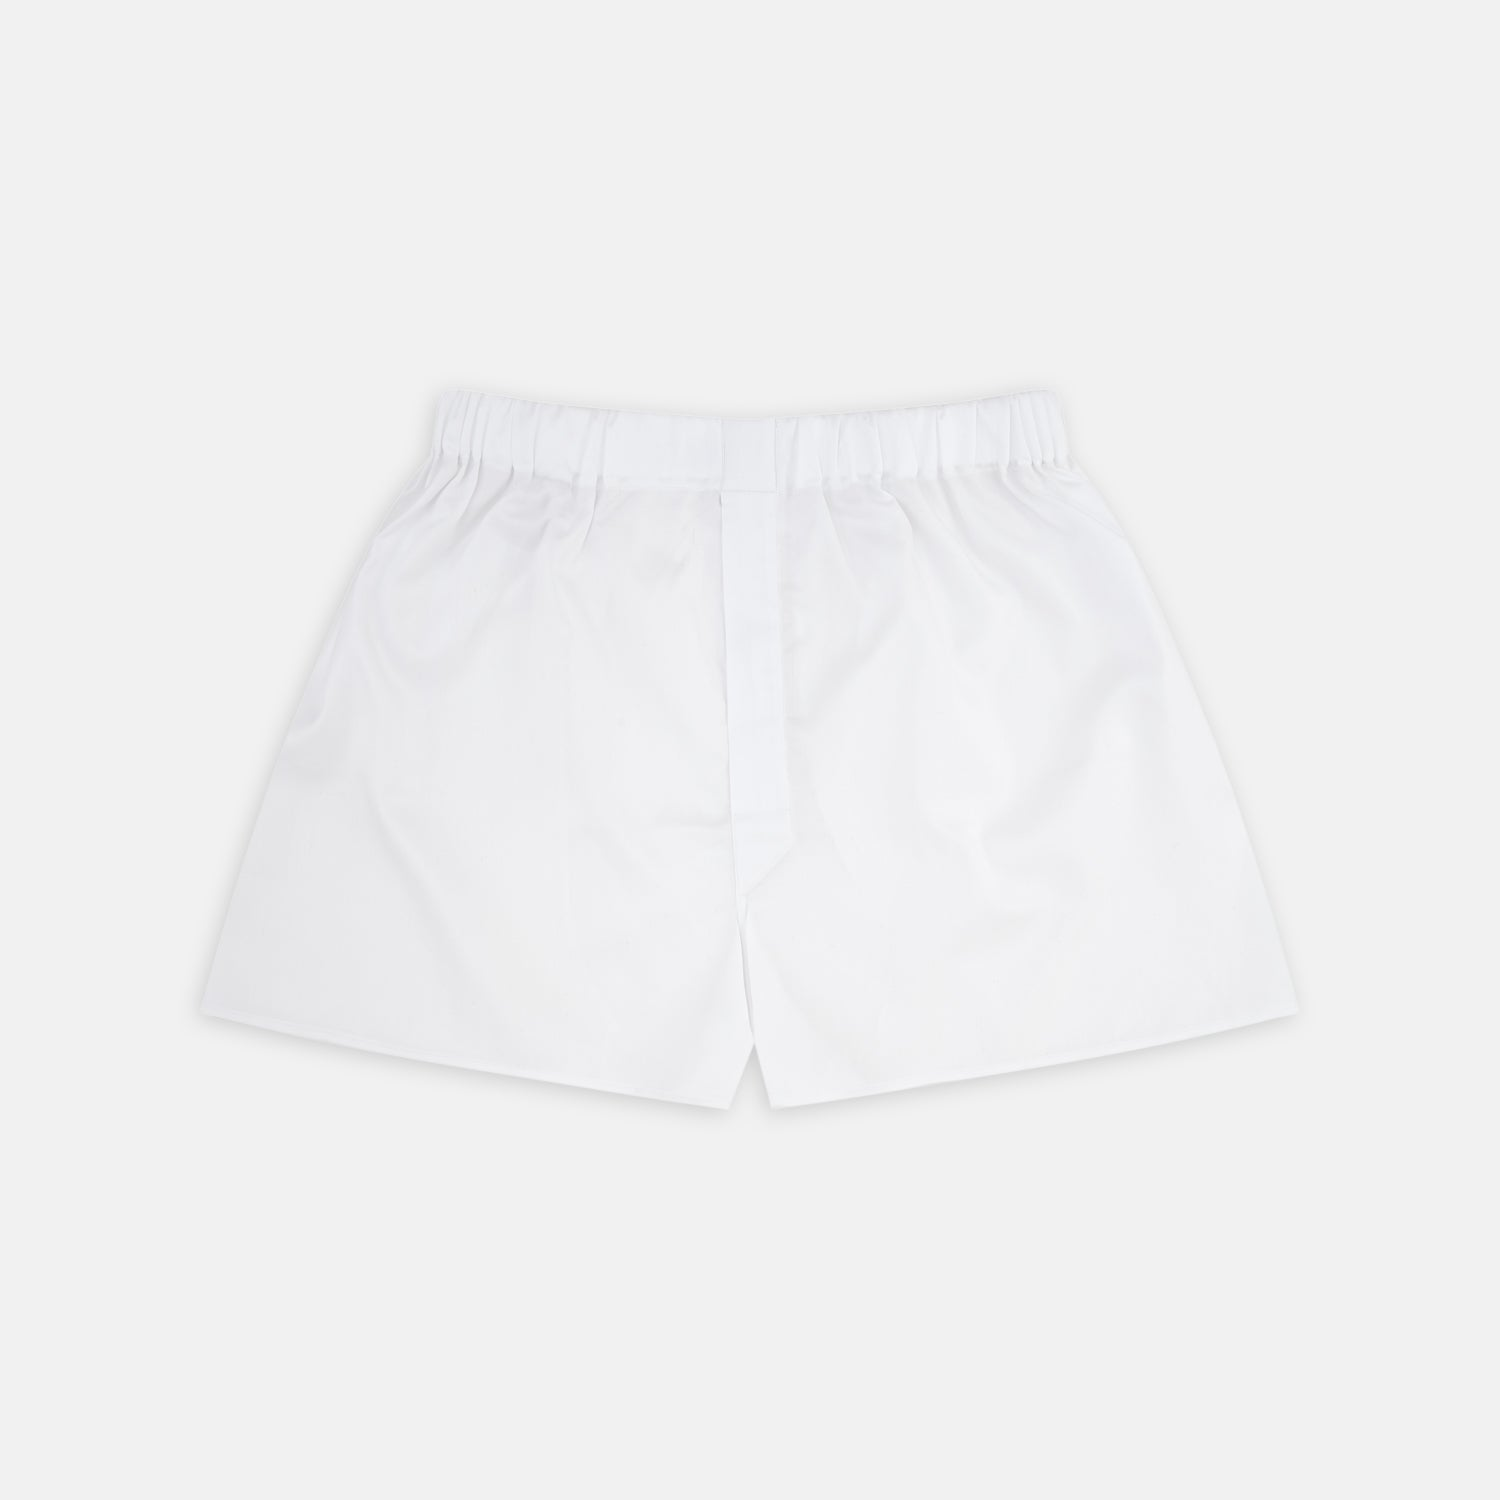 White Herringbone Sea Island Quality Cotton Boxer Shorts